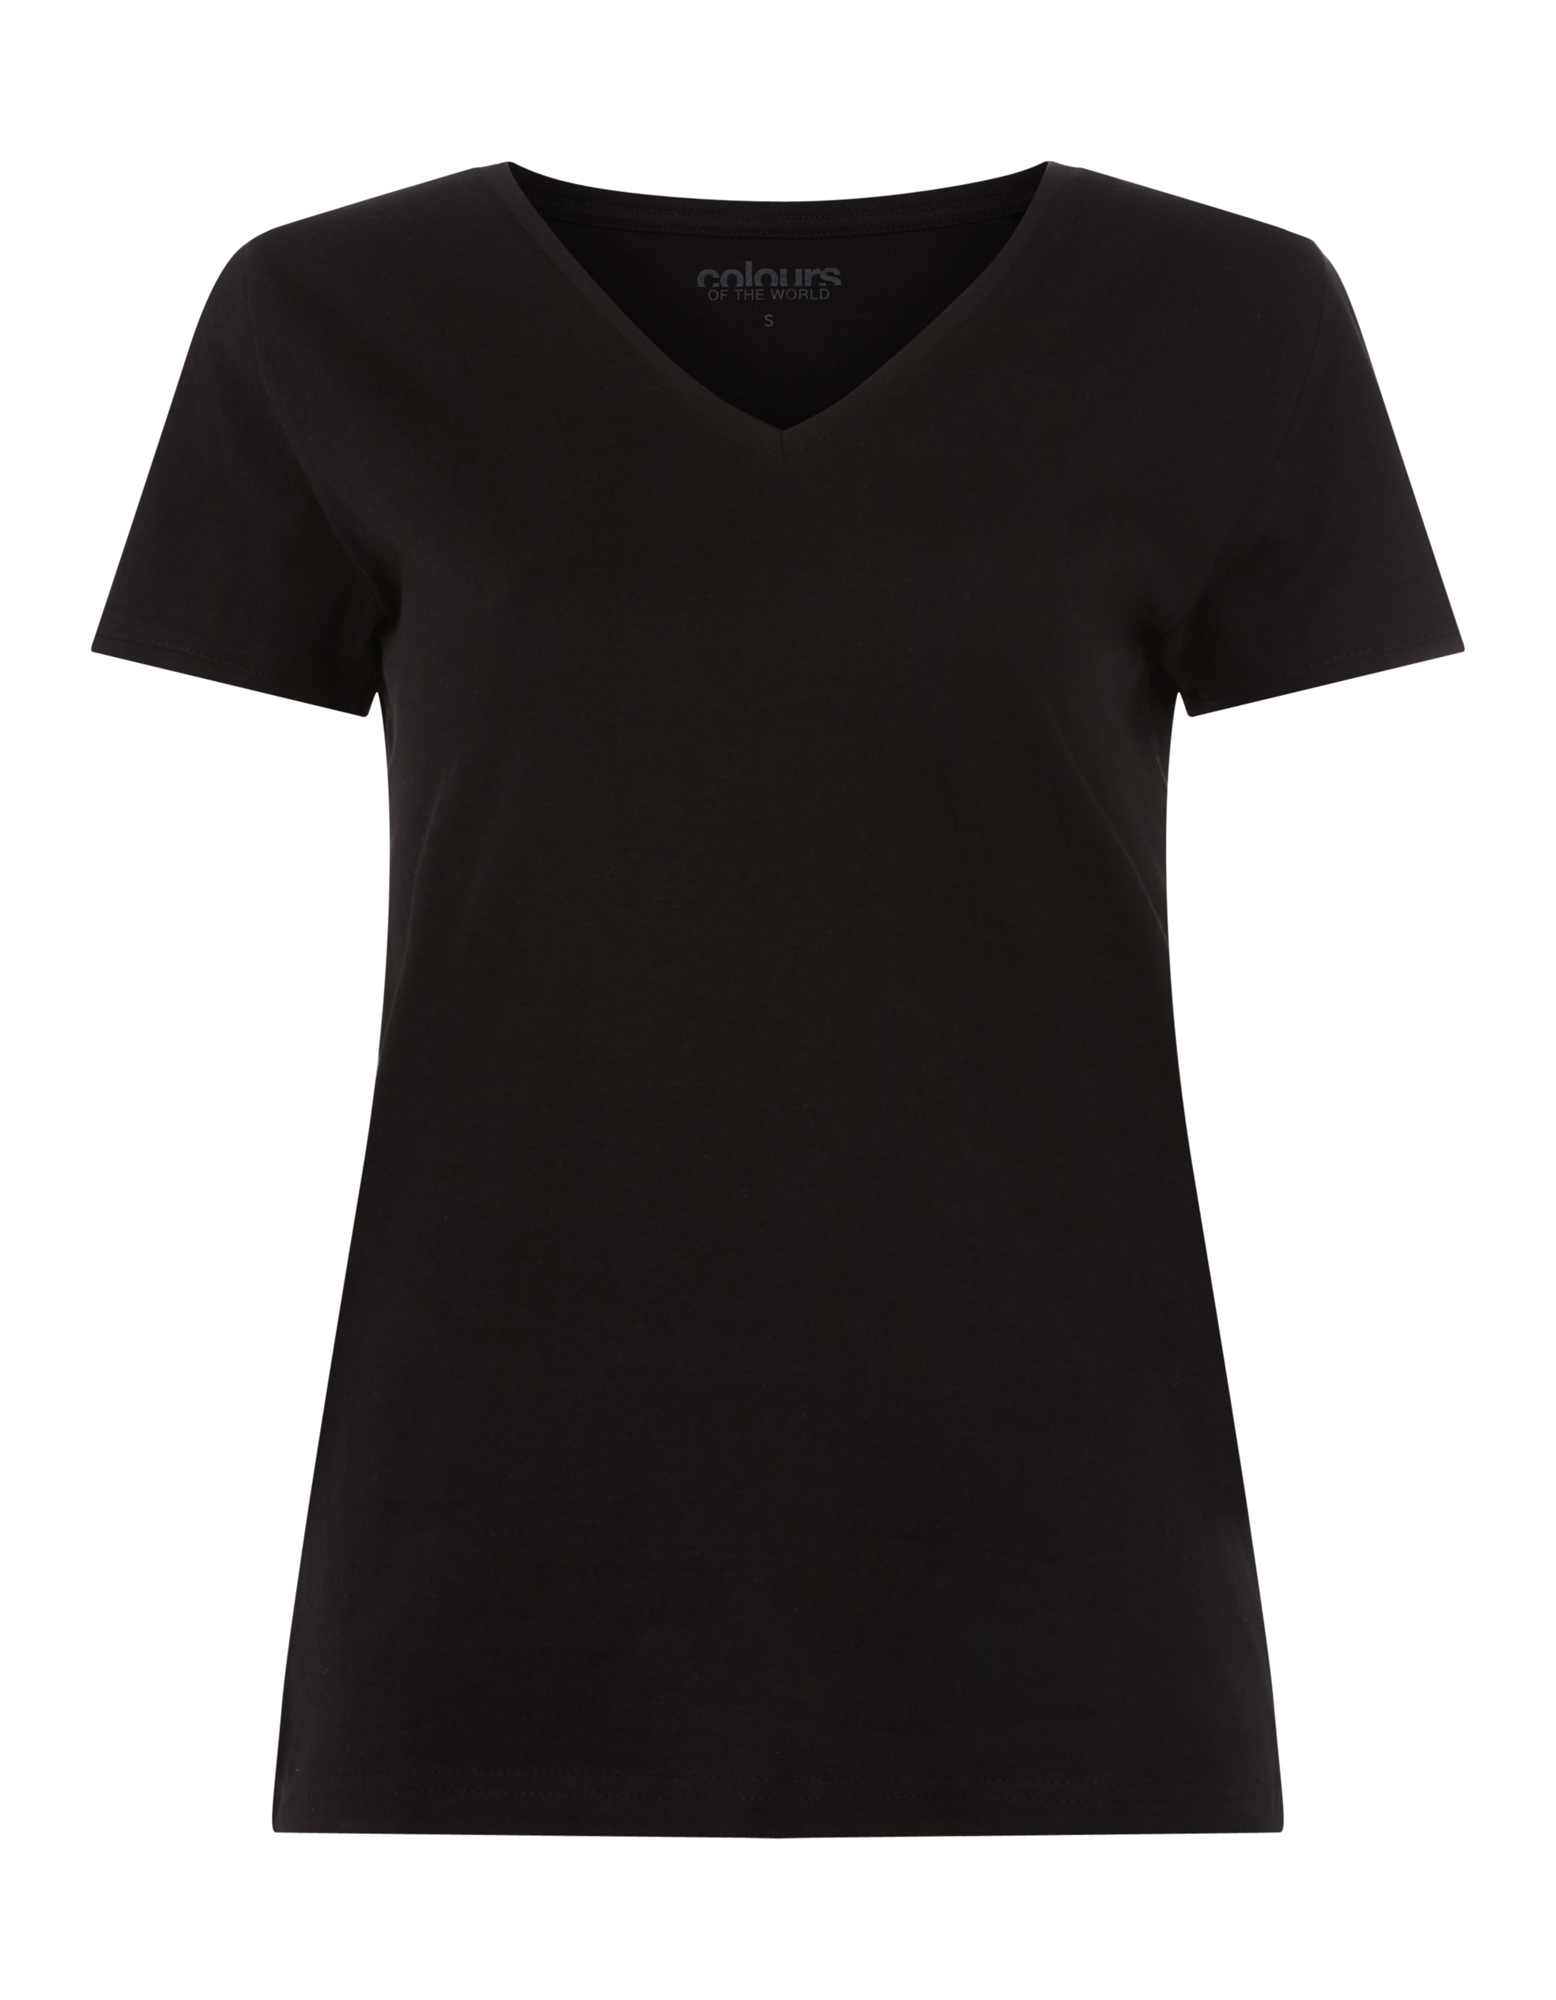 damen t shirt mit v ausschnitt takko fashion. Black Bedroom Furniture Sets. Home Design Ideas